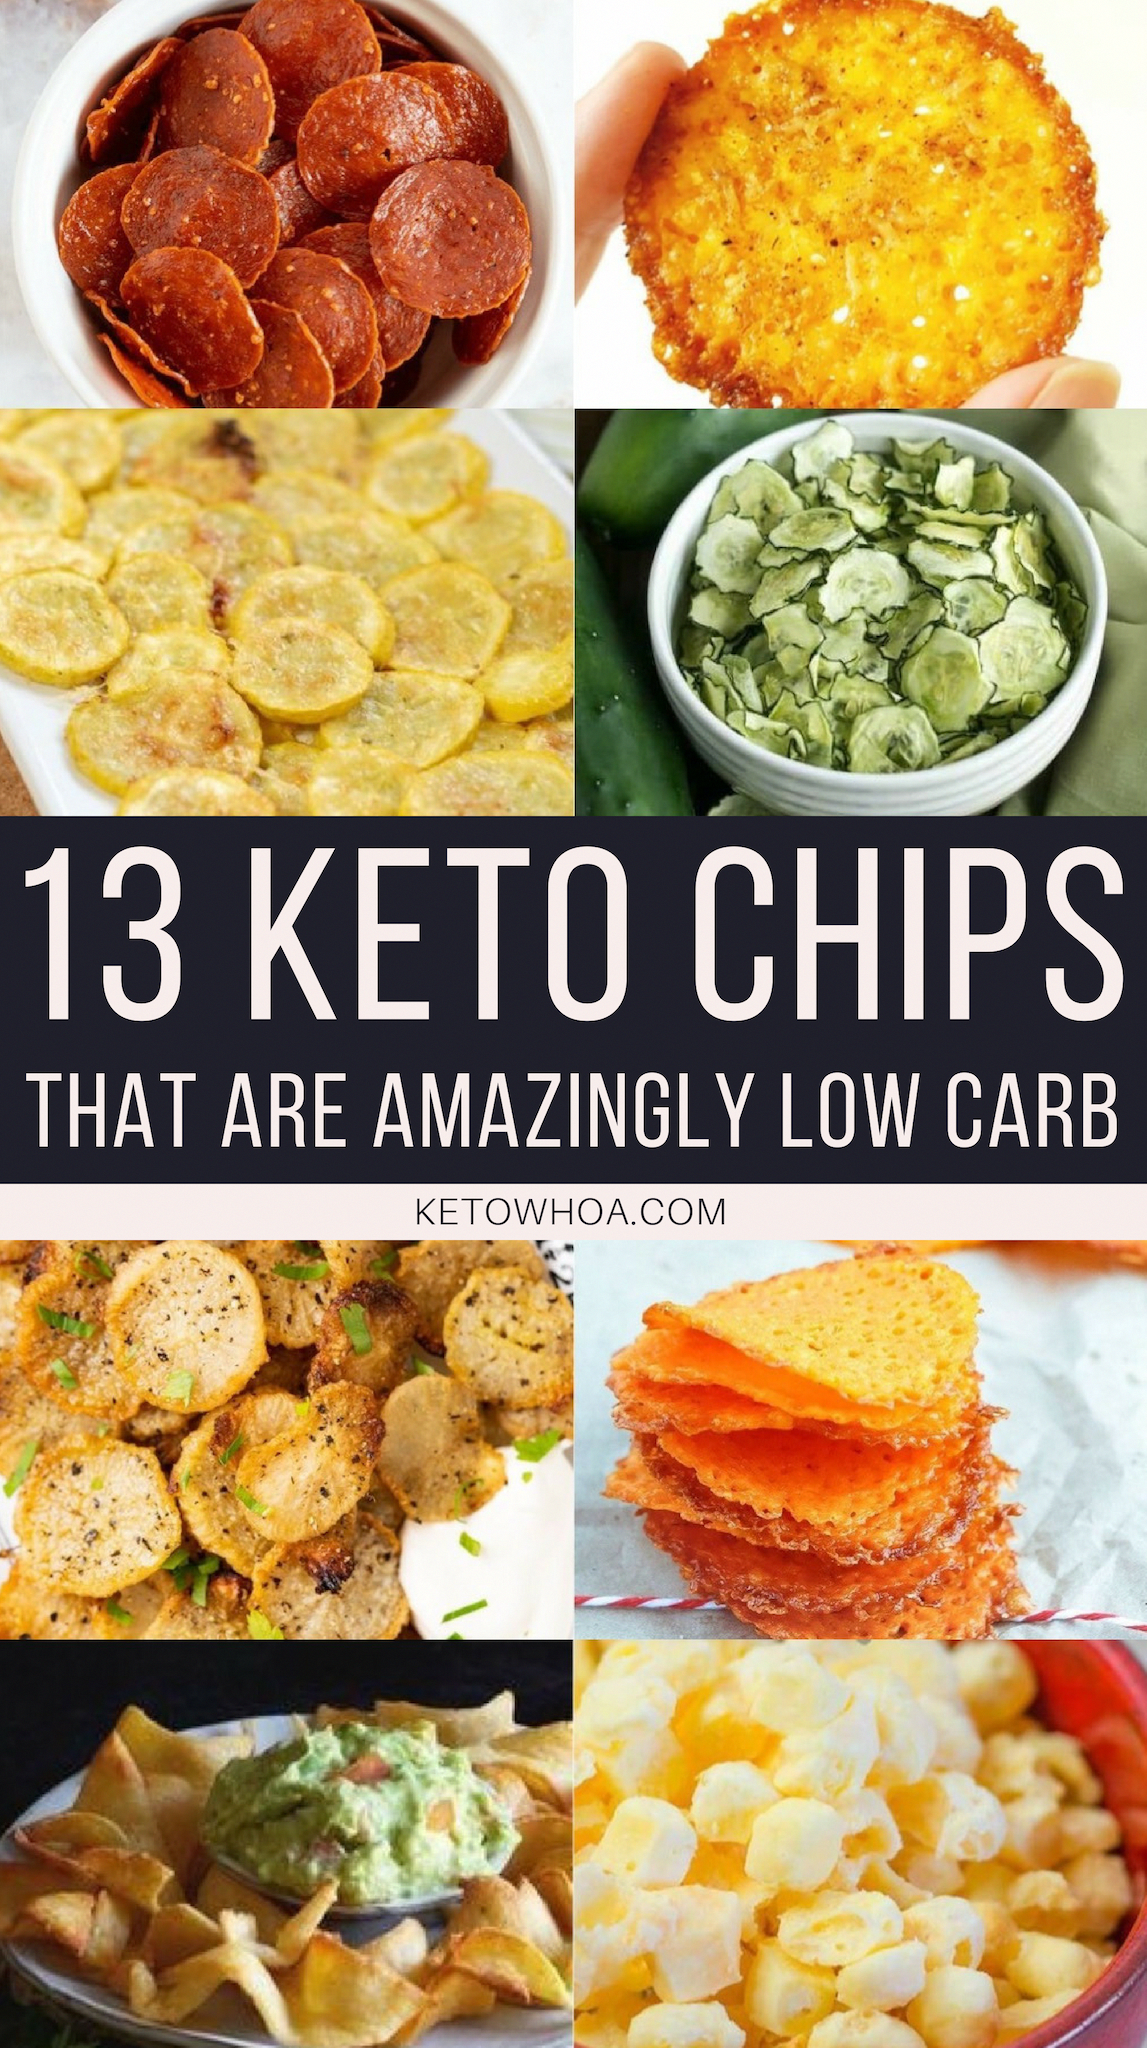 13 Best Homemade Low Carb Keto Chips Recipes Perfect for